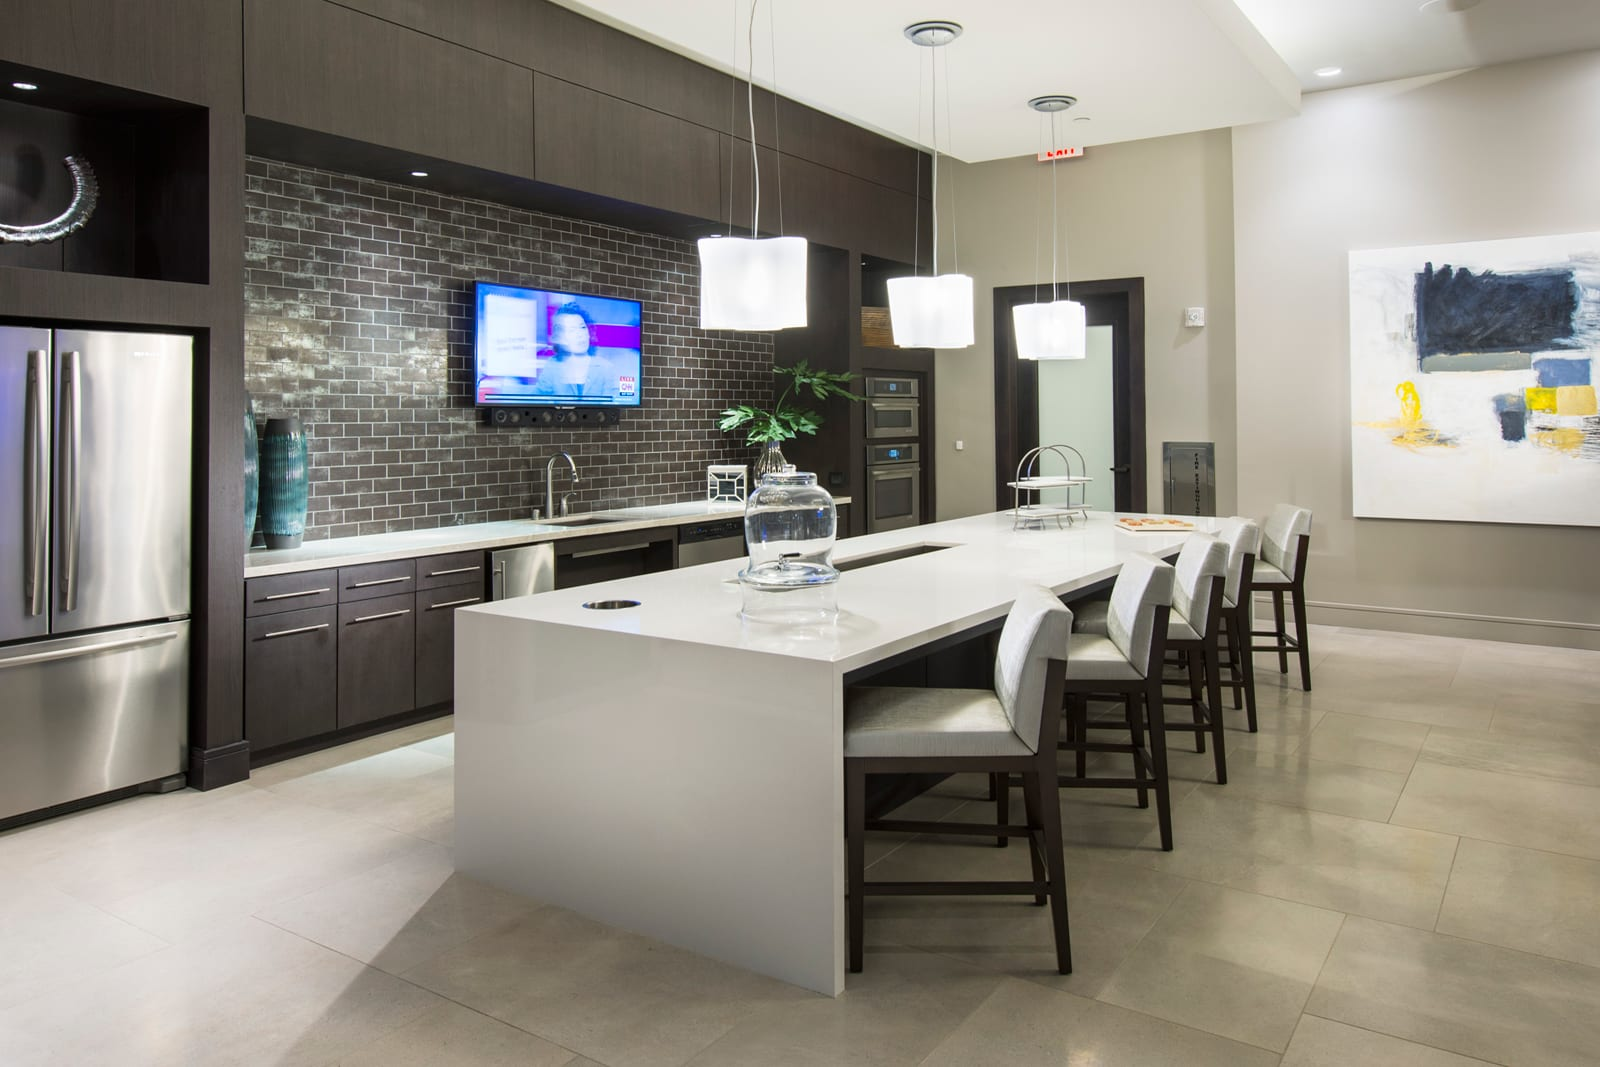 Catering Kitchen Lounge at 1000 Grand by Windsor, Los Angeles, CA